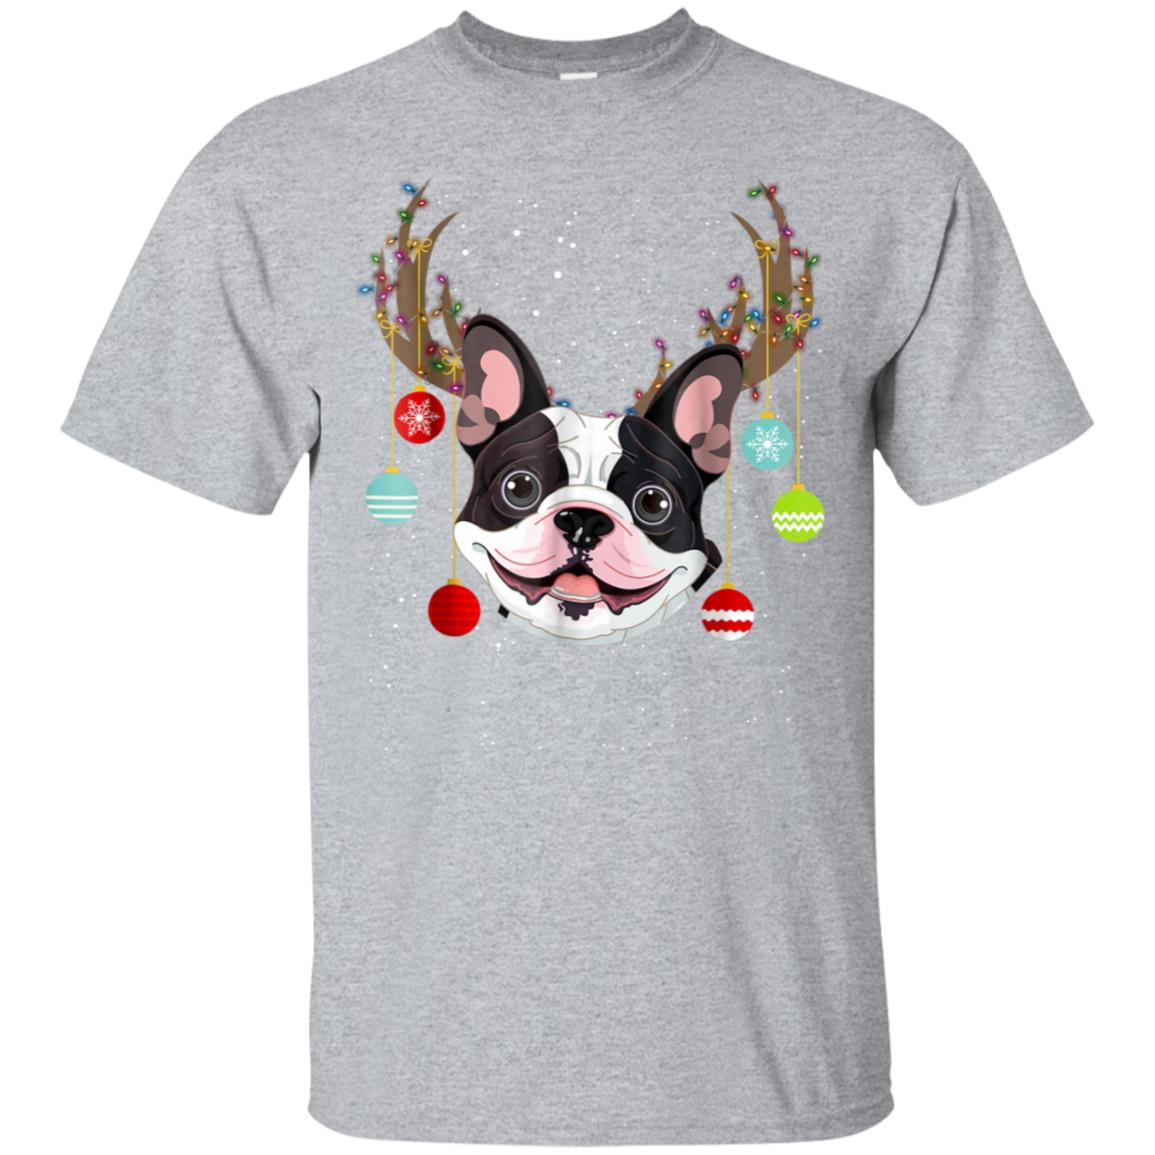 Funny Cute Dog Frenchie With Antlers Christmas Xmas T-shirt 99promocode